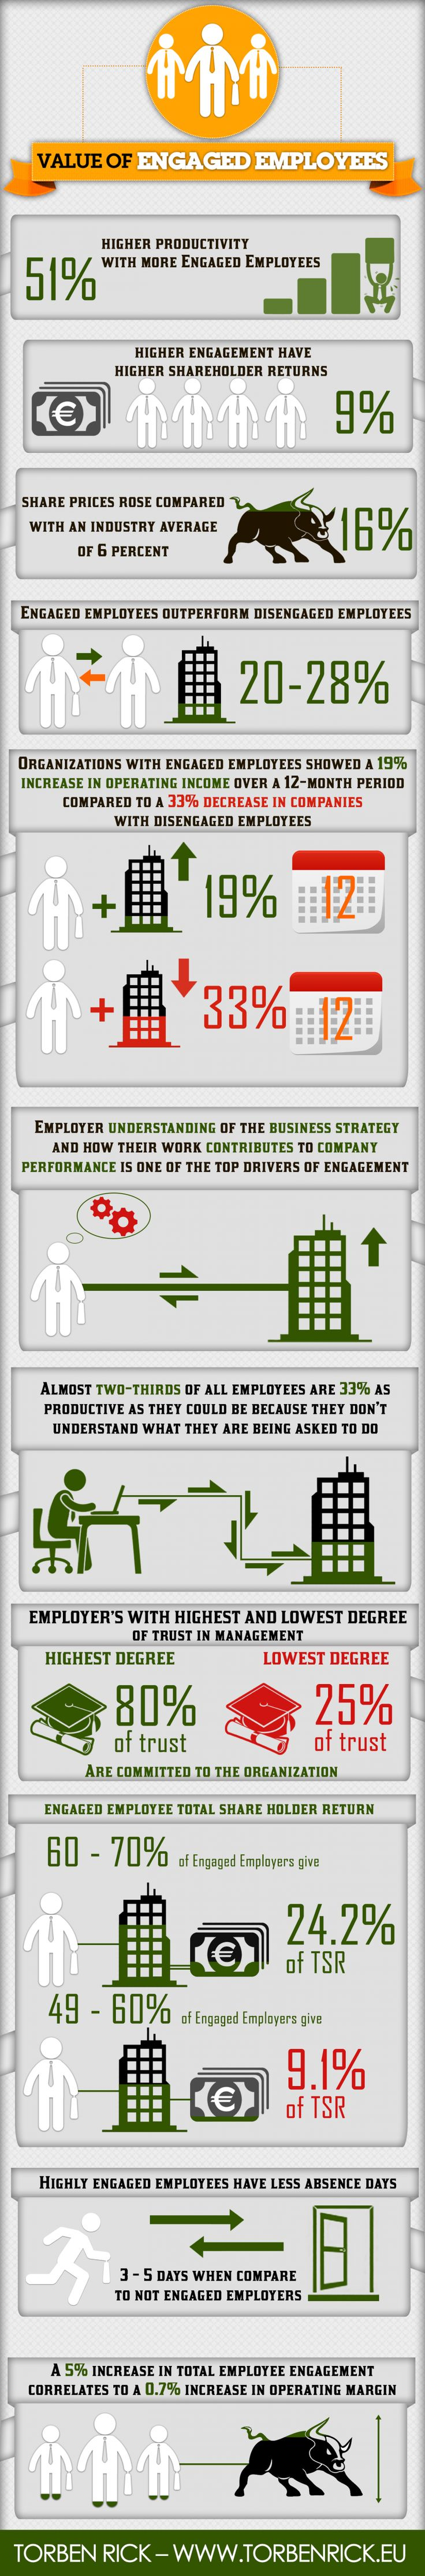 What is the business case for employee engagement? #infographic #workforce #engagement